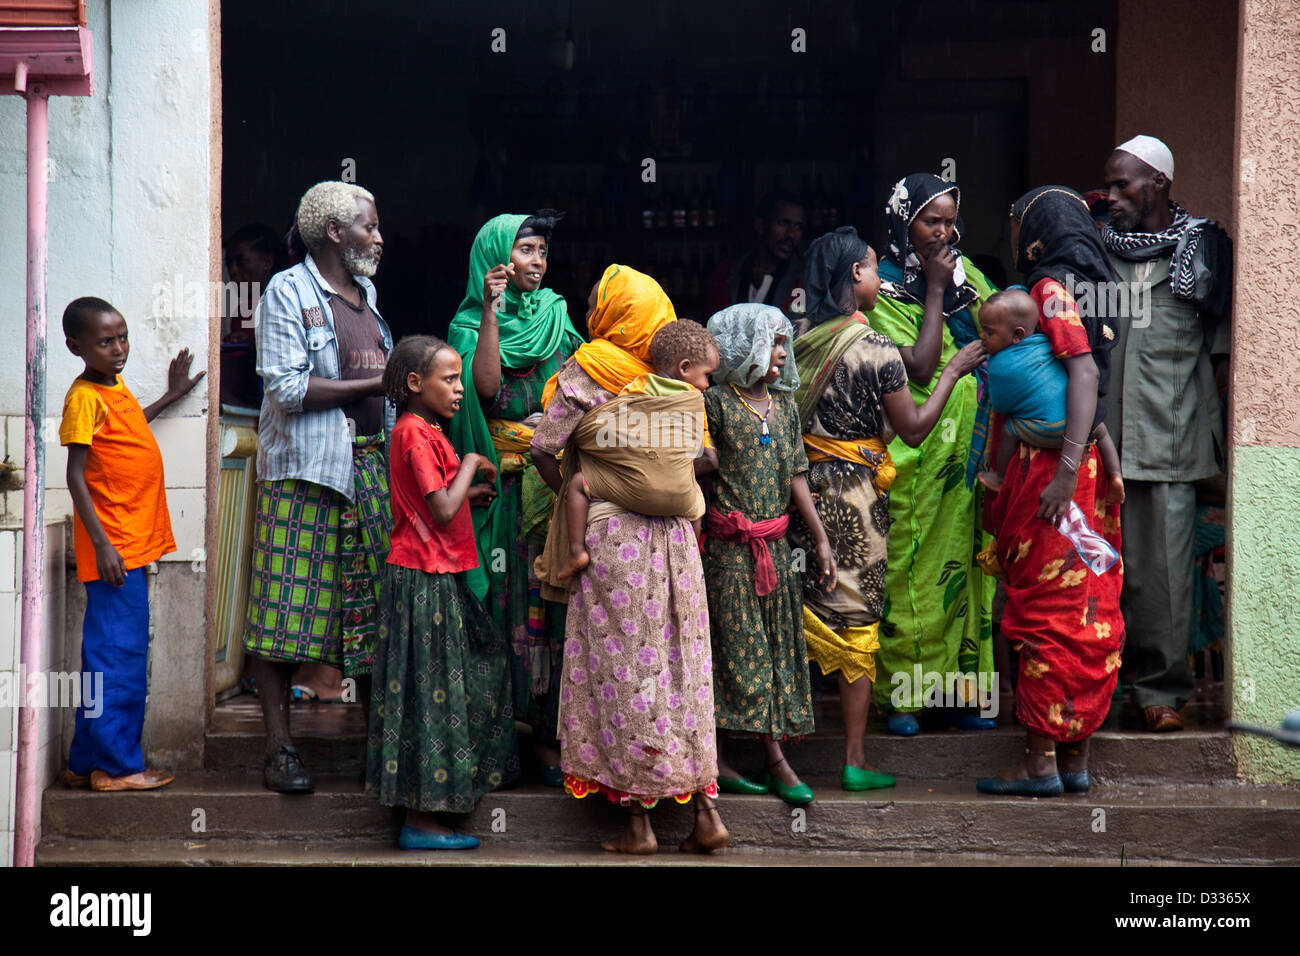 Women wait at a bus station near Harar, Ethiopia - Stock Image